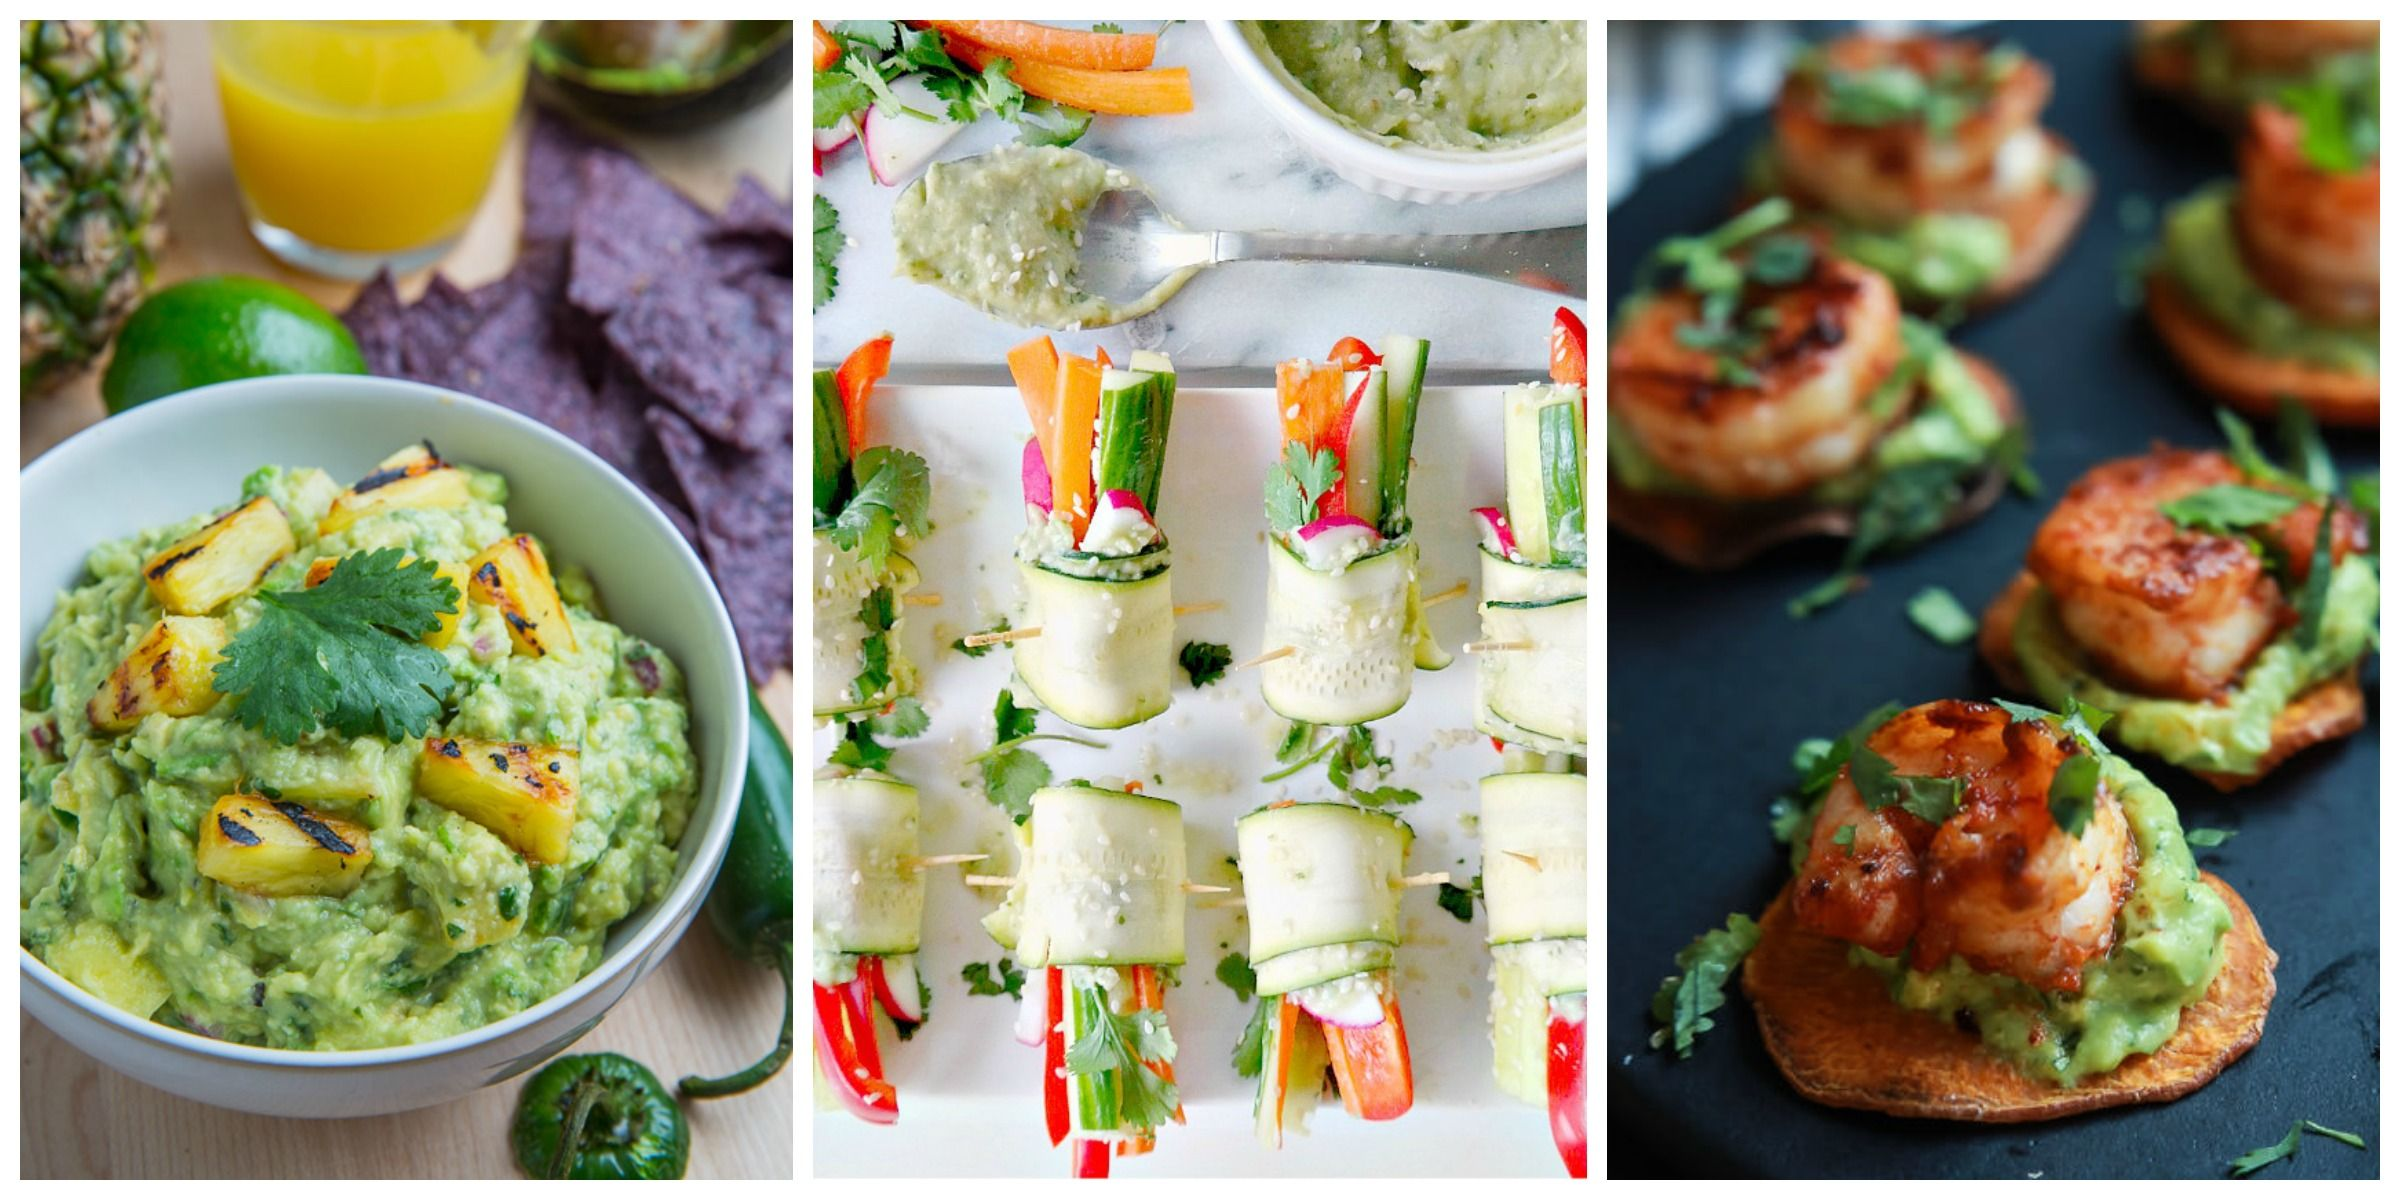 Healthy super bowl snacks healthy options for super bowl snacks forumfinder Choice Image